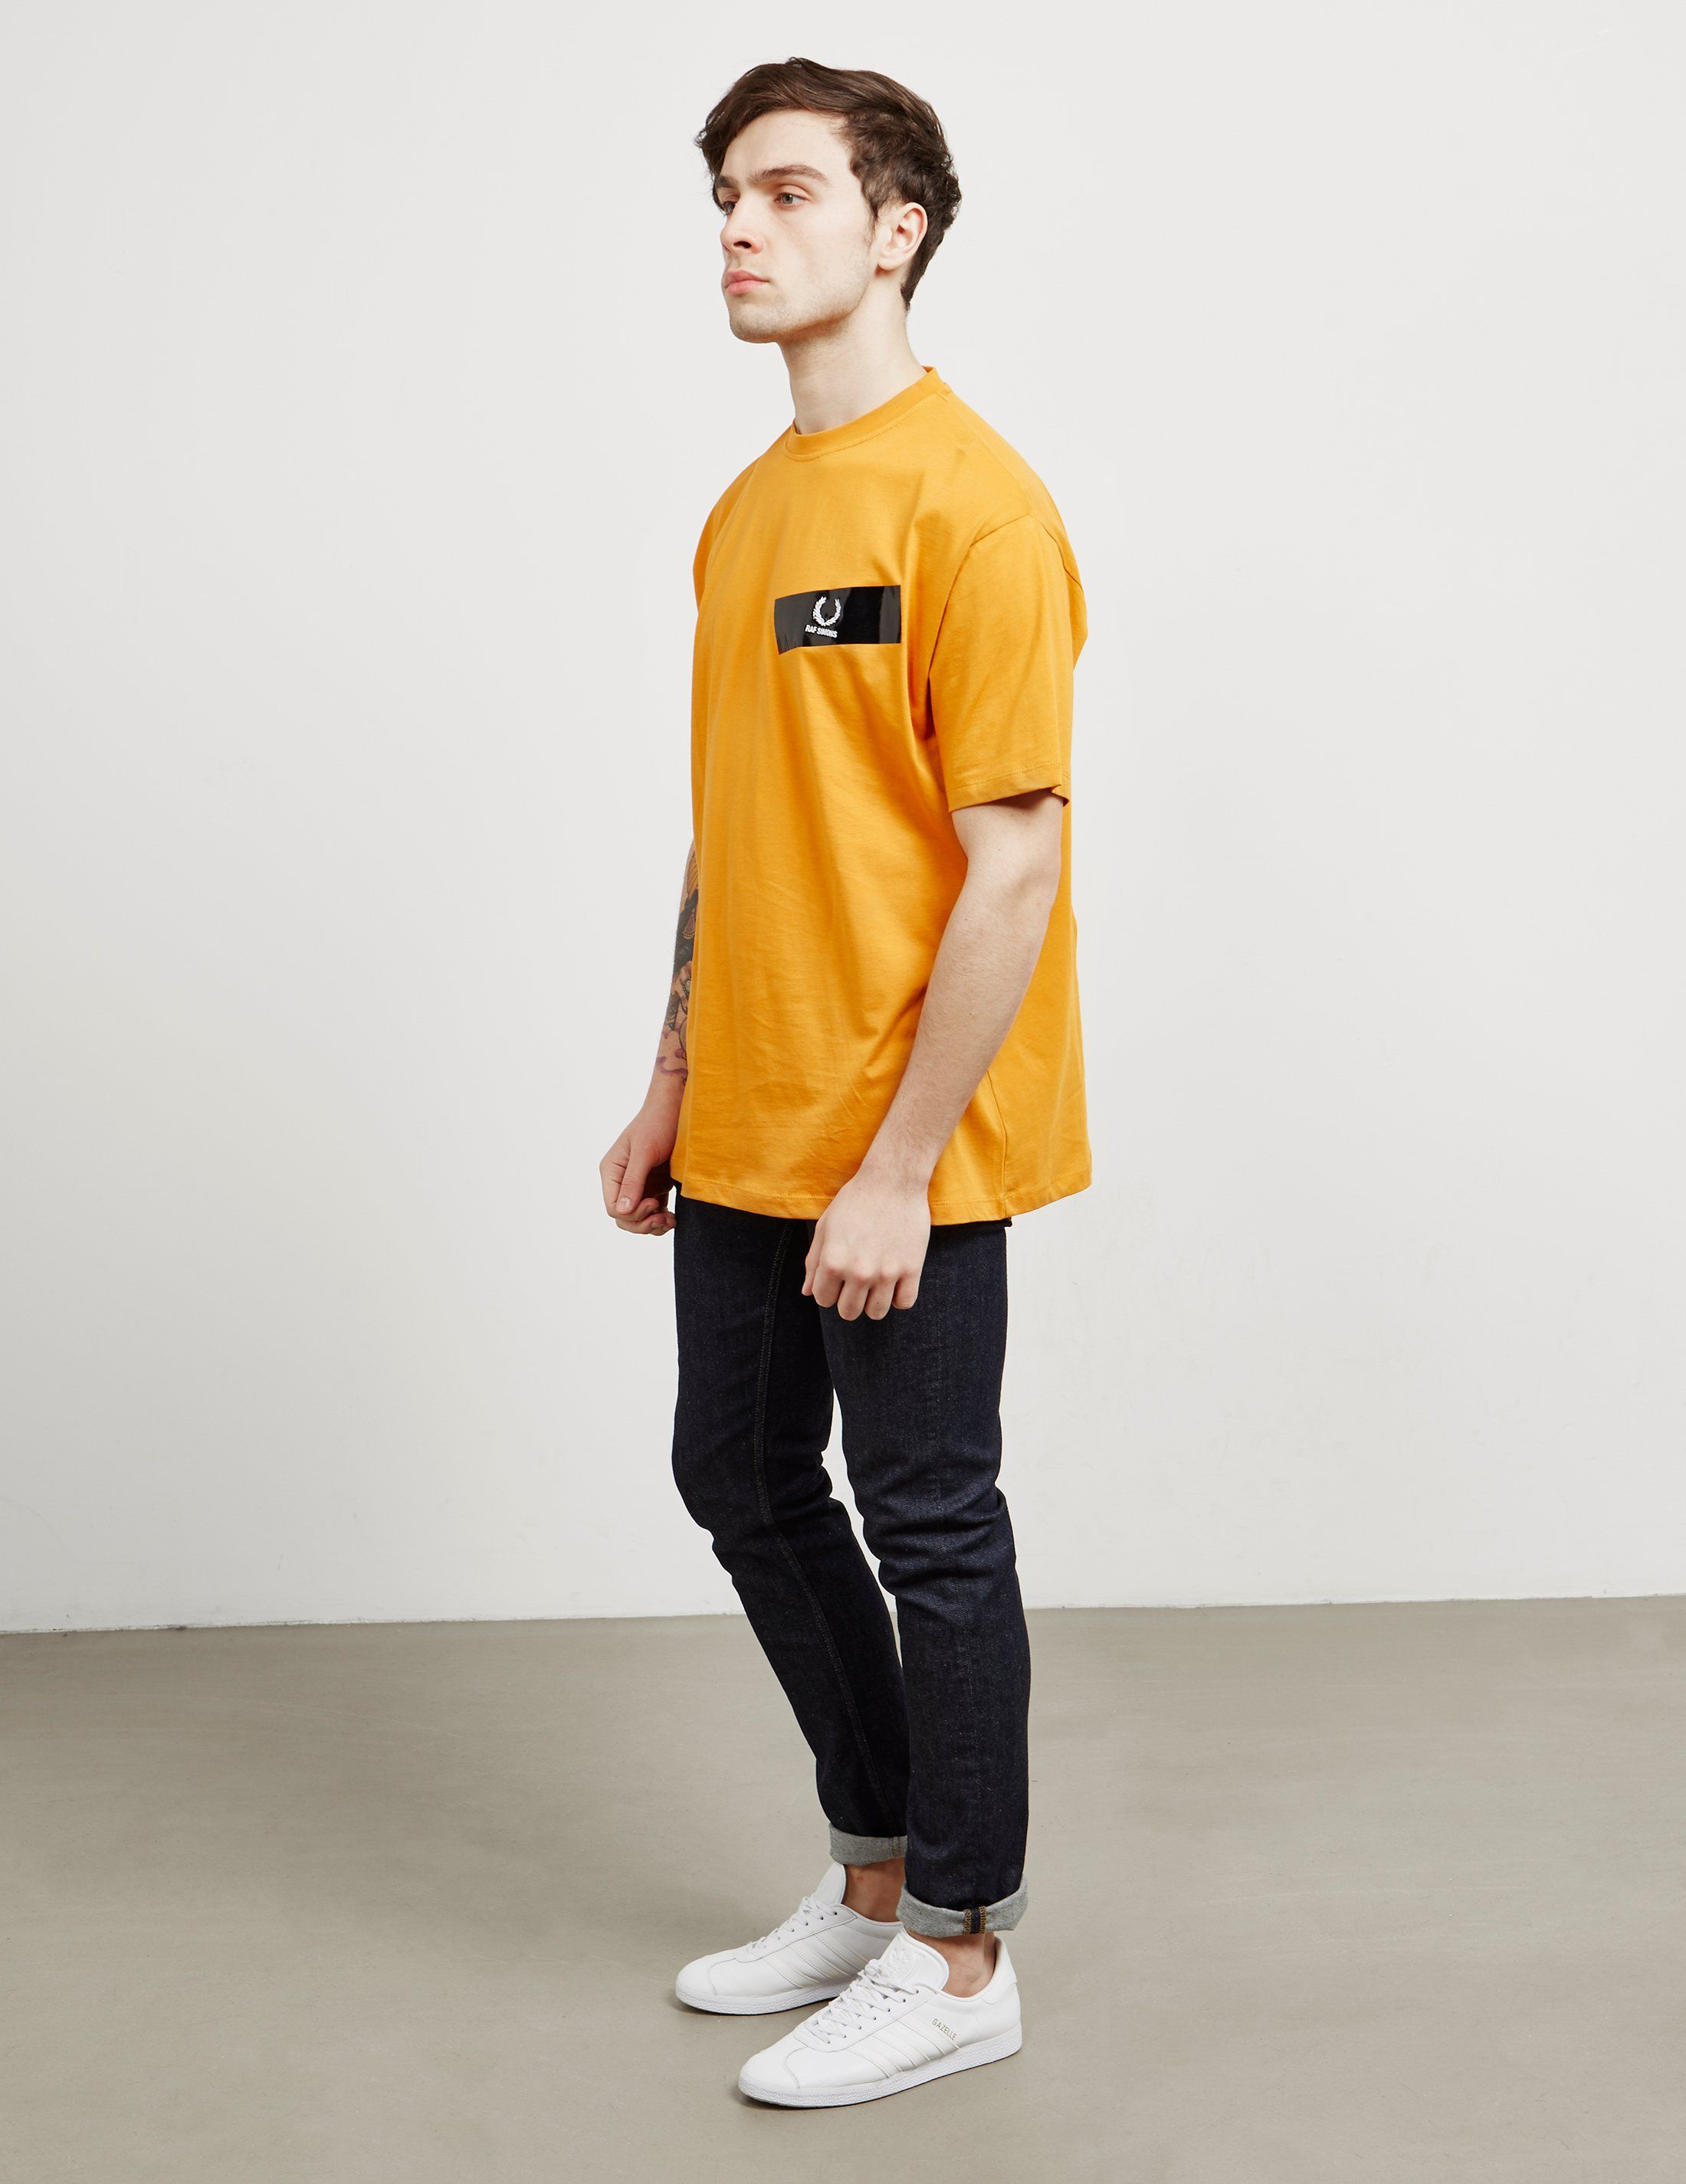 Fred Perry x Raf Simons Tape Short Sleeve T-Shirt